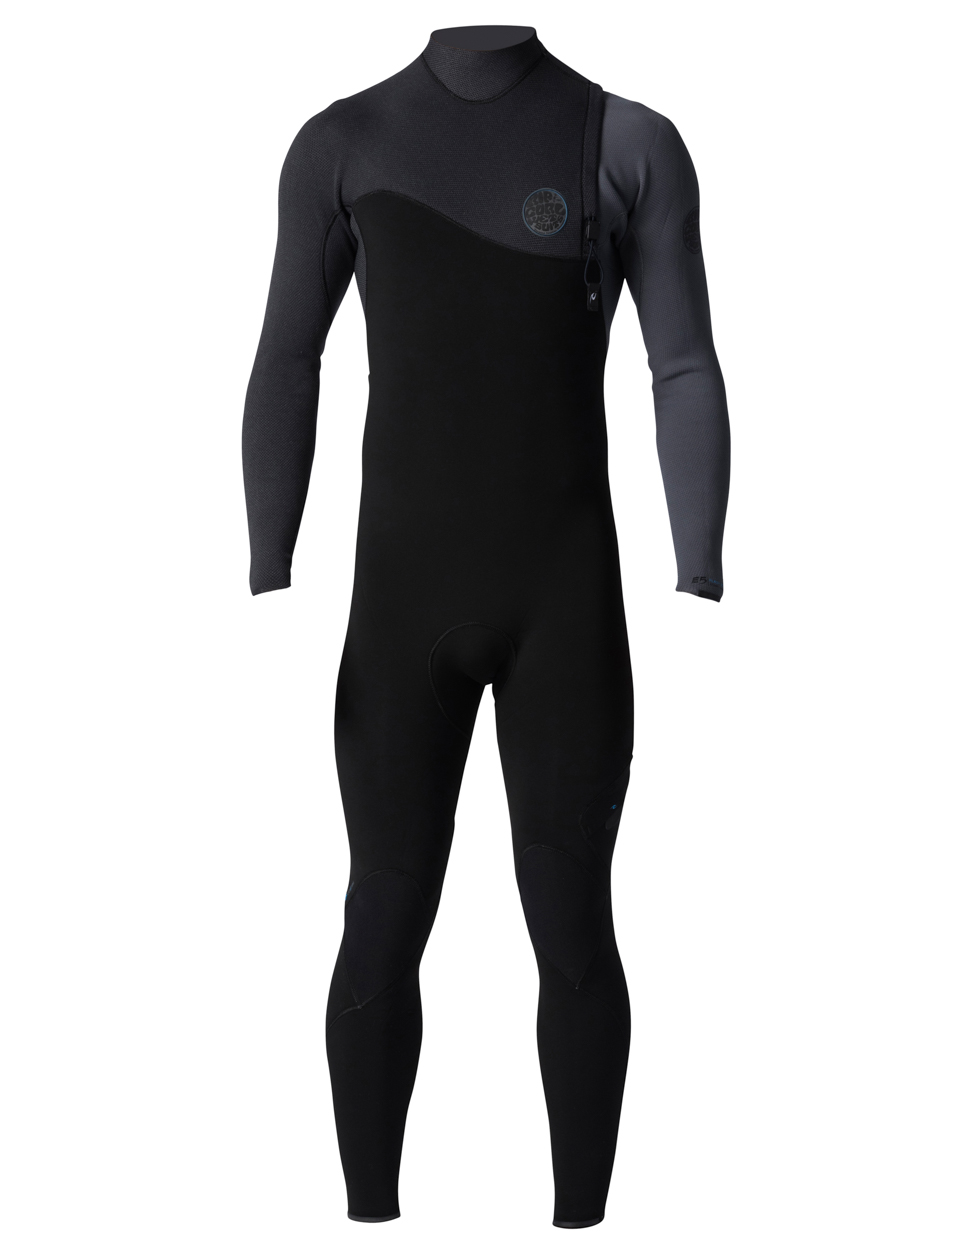 """SHOP MANAGER MIKE SAYS……..If you want the ultimate warmth without giving up the flexibility and a quick drying suit to get you back out there in no time, this is your suit!"""""""